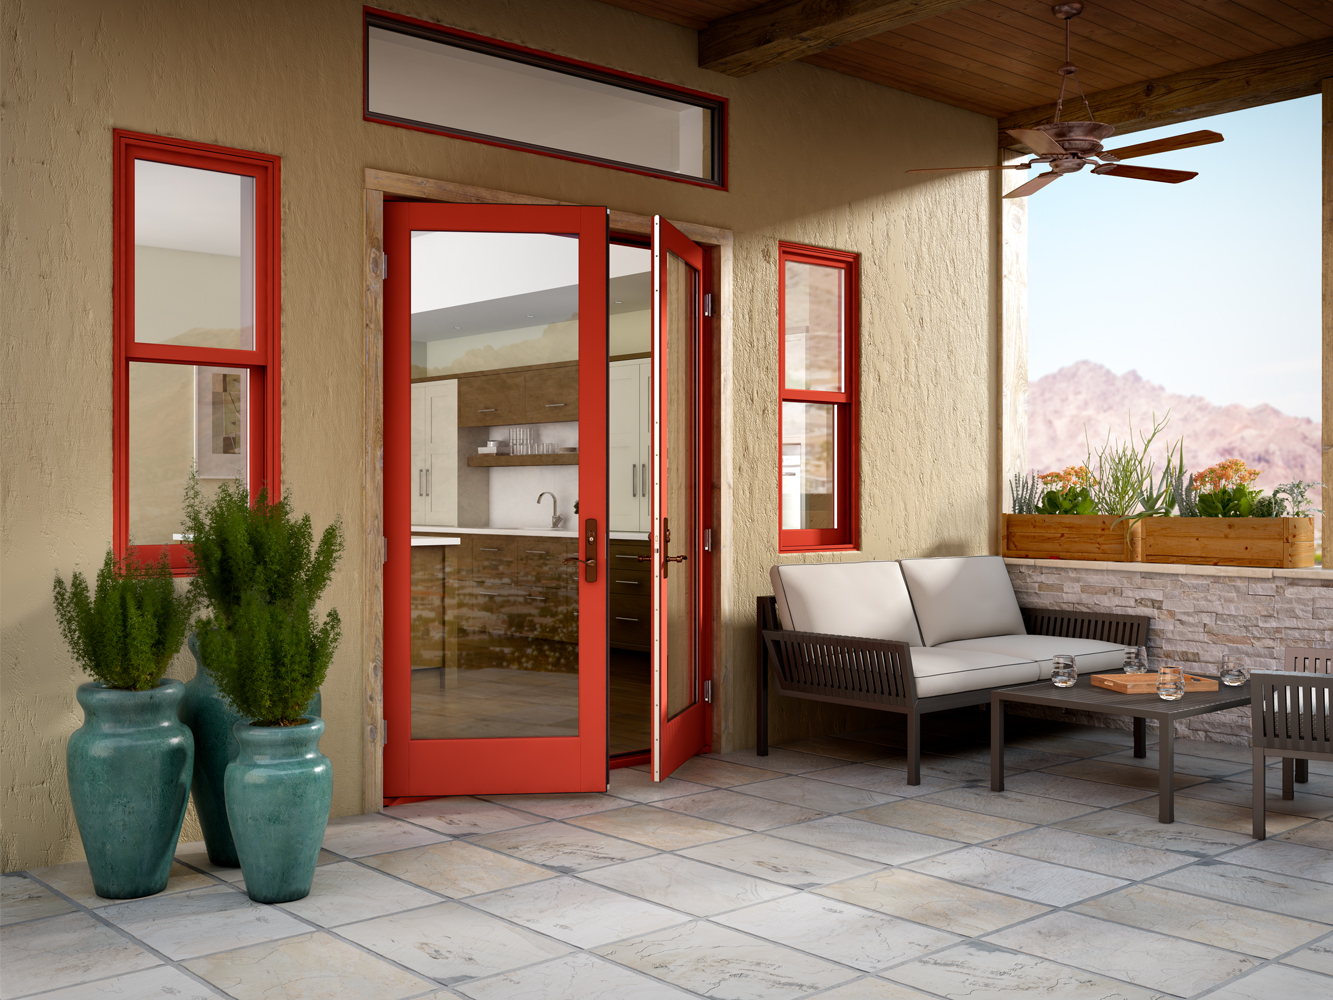 pix-us-cg-red-doors